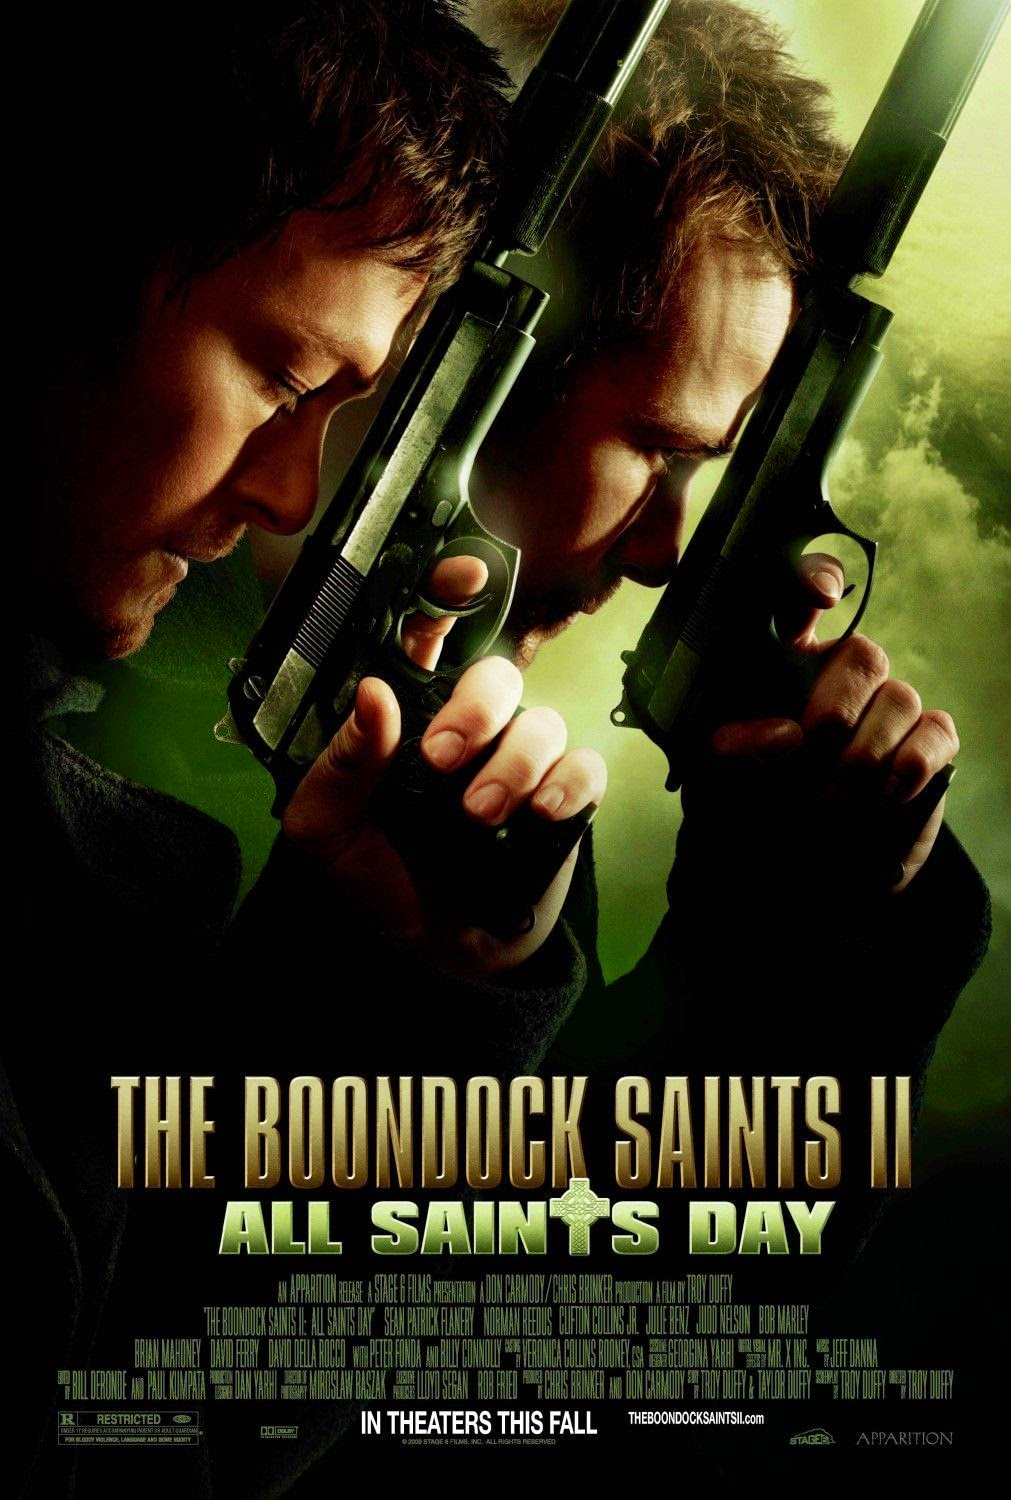 The Boondock Saints II: All Saints Day (2009) ταινιες online seires xrysoi greek subs